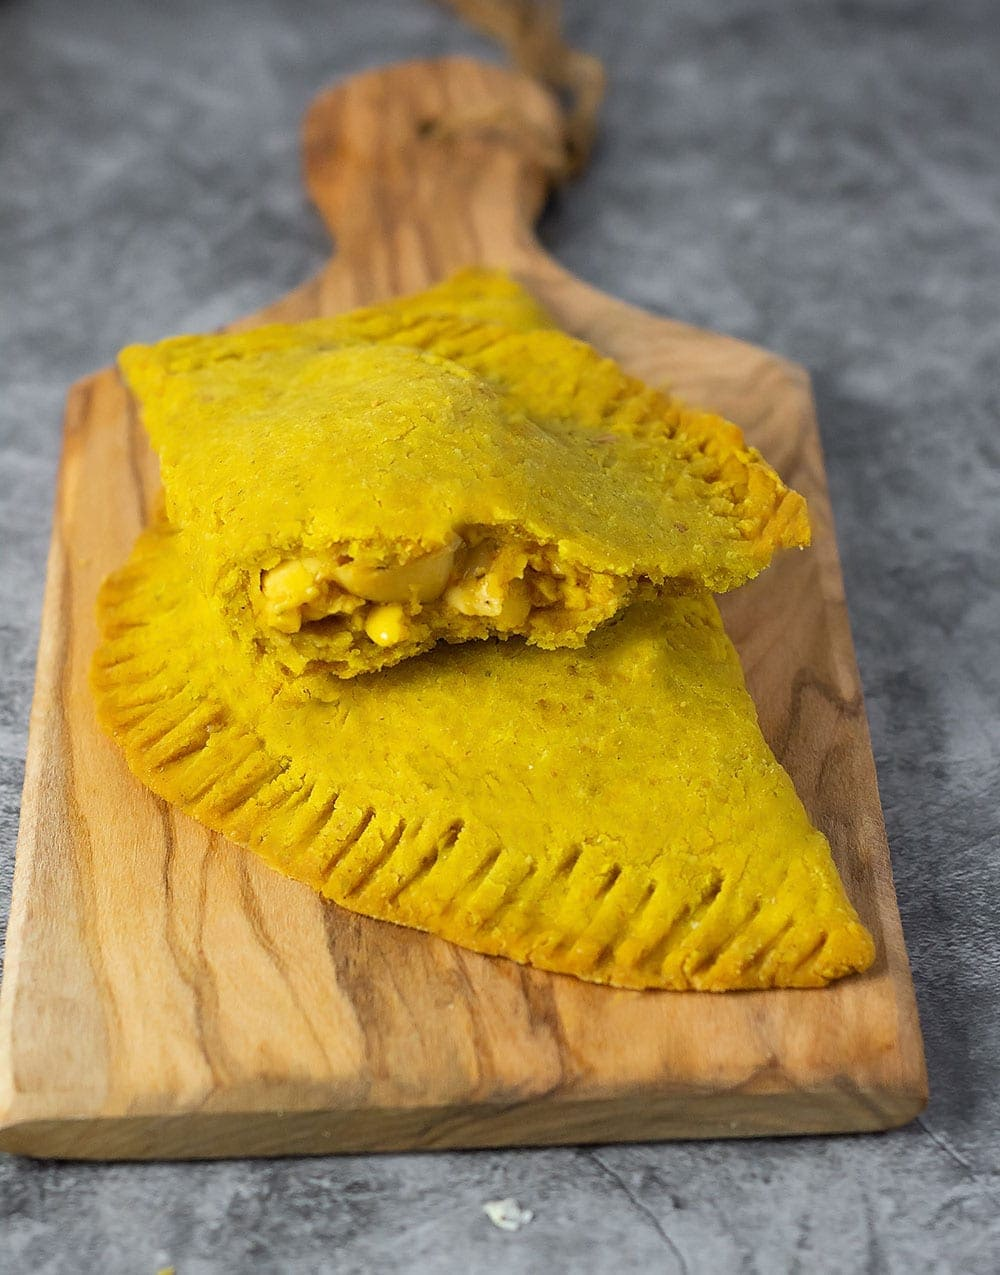 Jamaican ackee patty, two patties on a cutting board with grey background